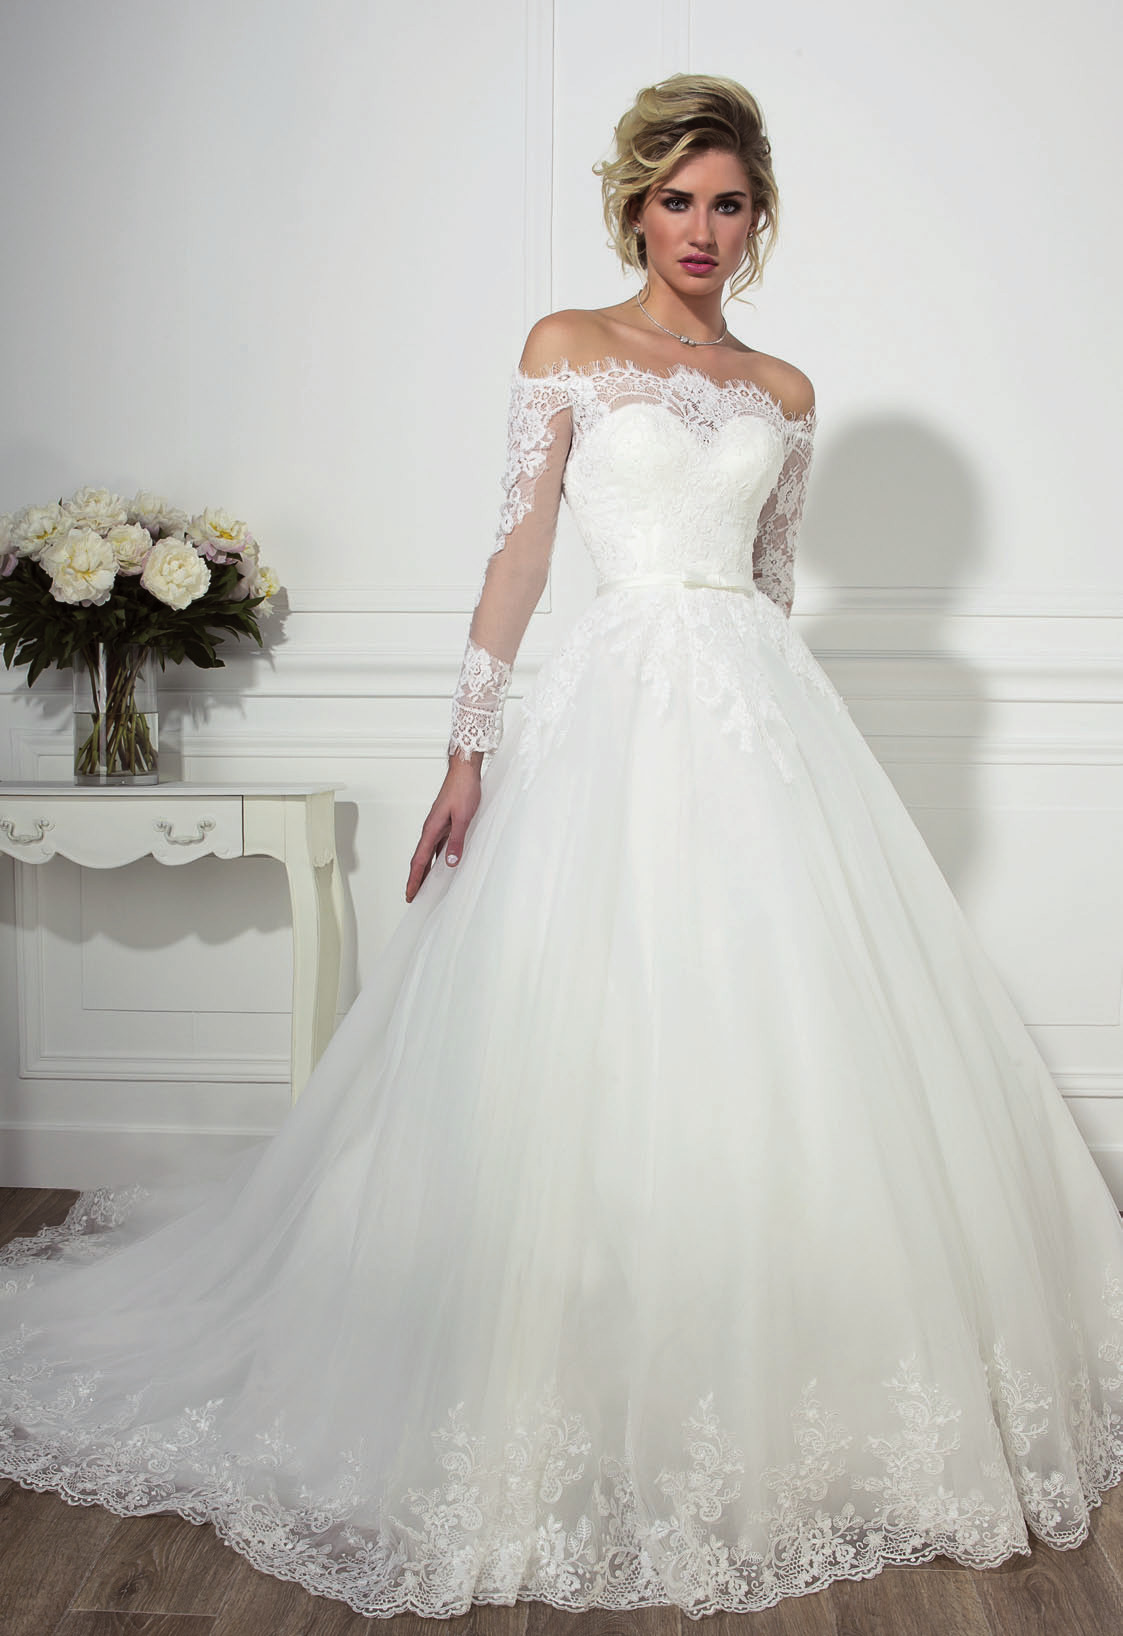 Robe De Mariee Love Wedding Modele Bianca Declaration Mariage